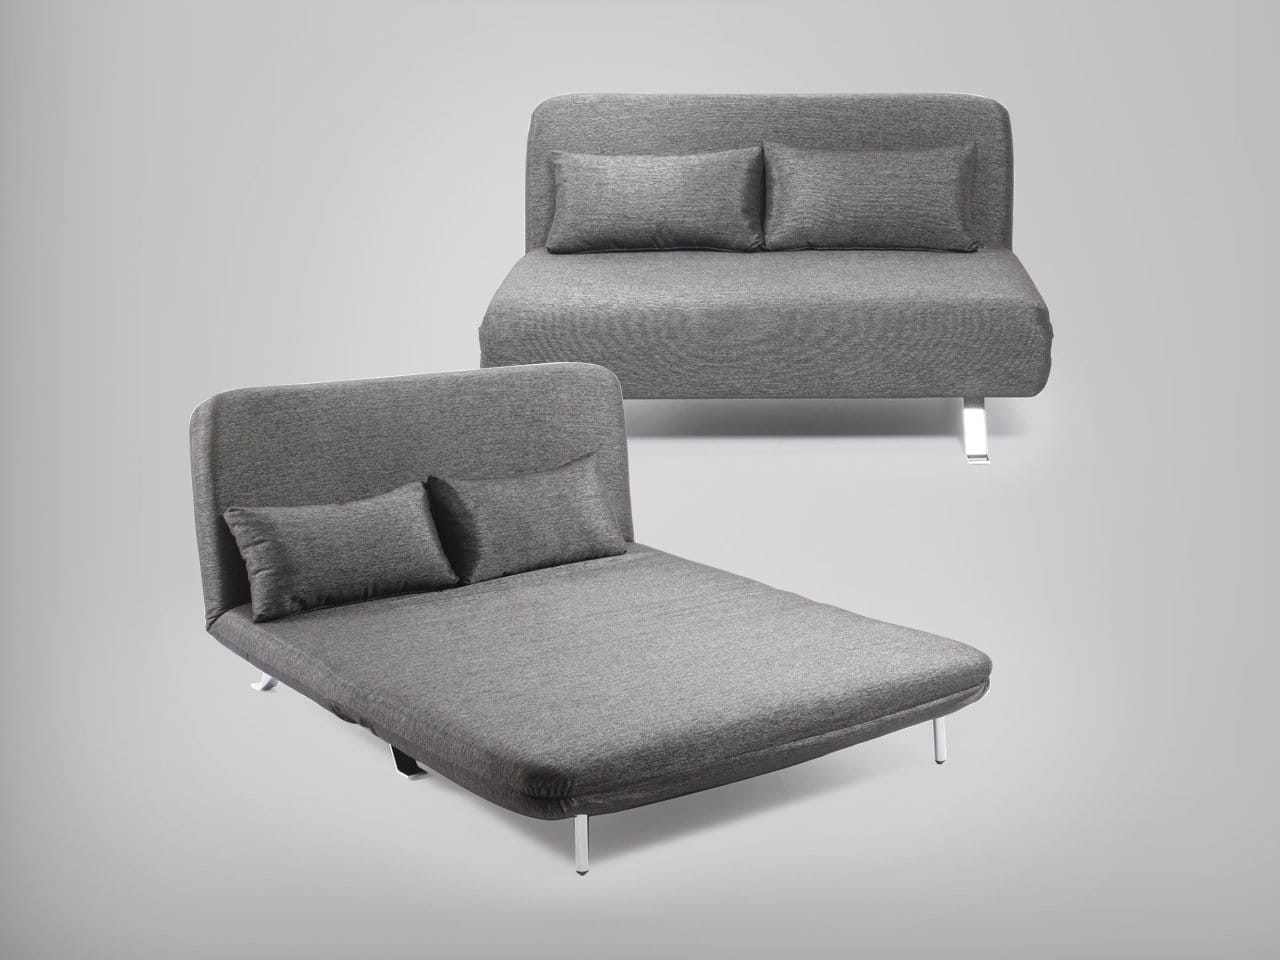 peace sofabed | comfort design - the chair & table people